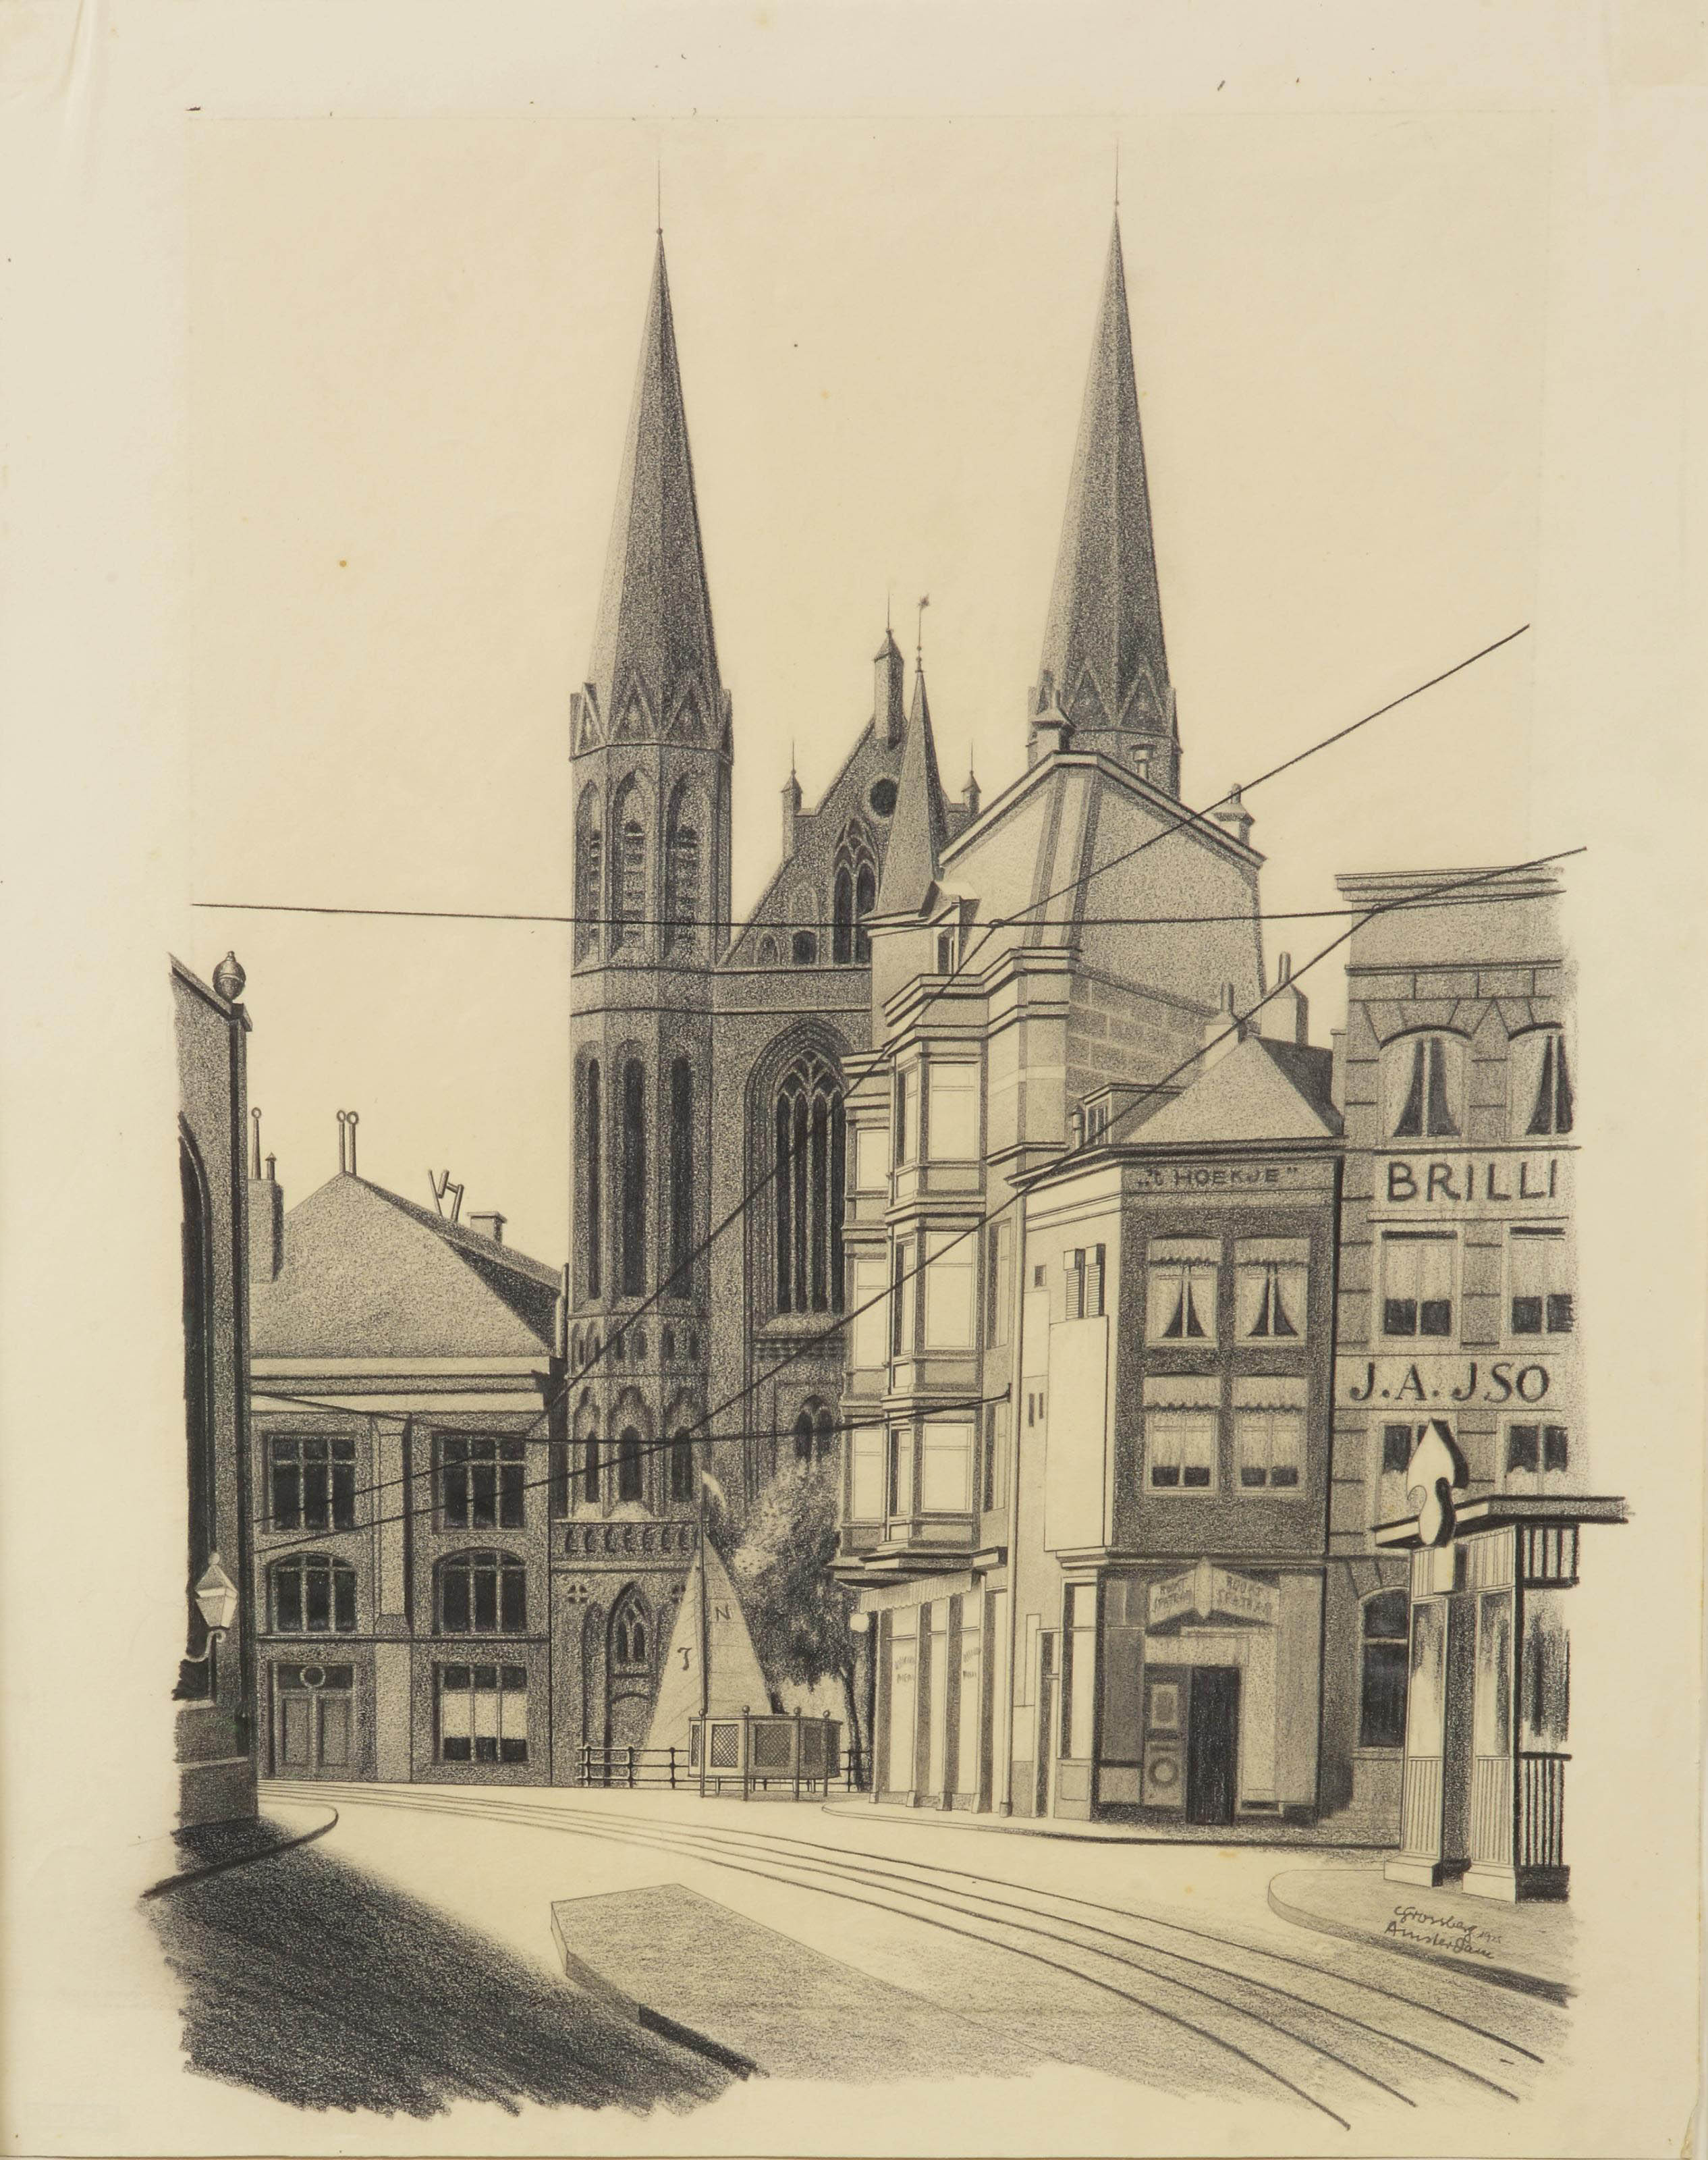 View of the Singel with the Krijtberg church, Amsterdam